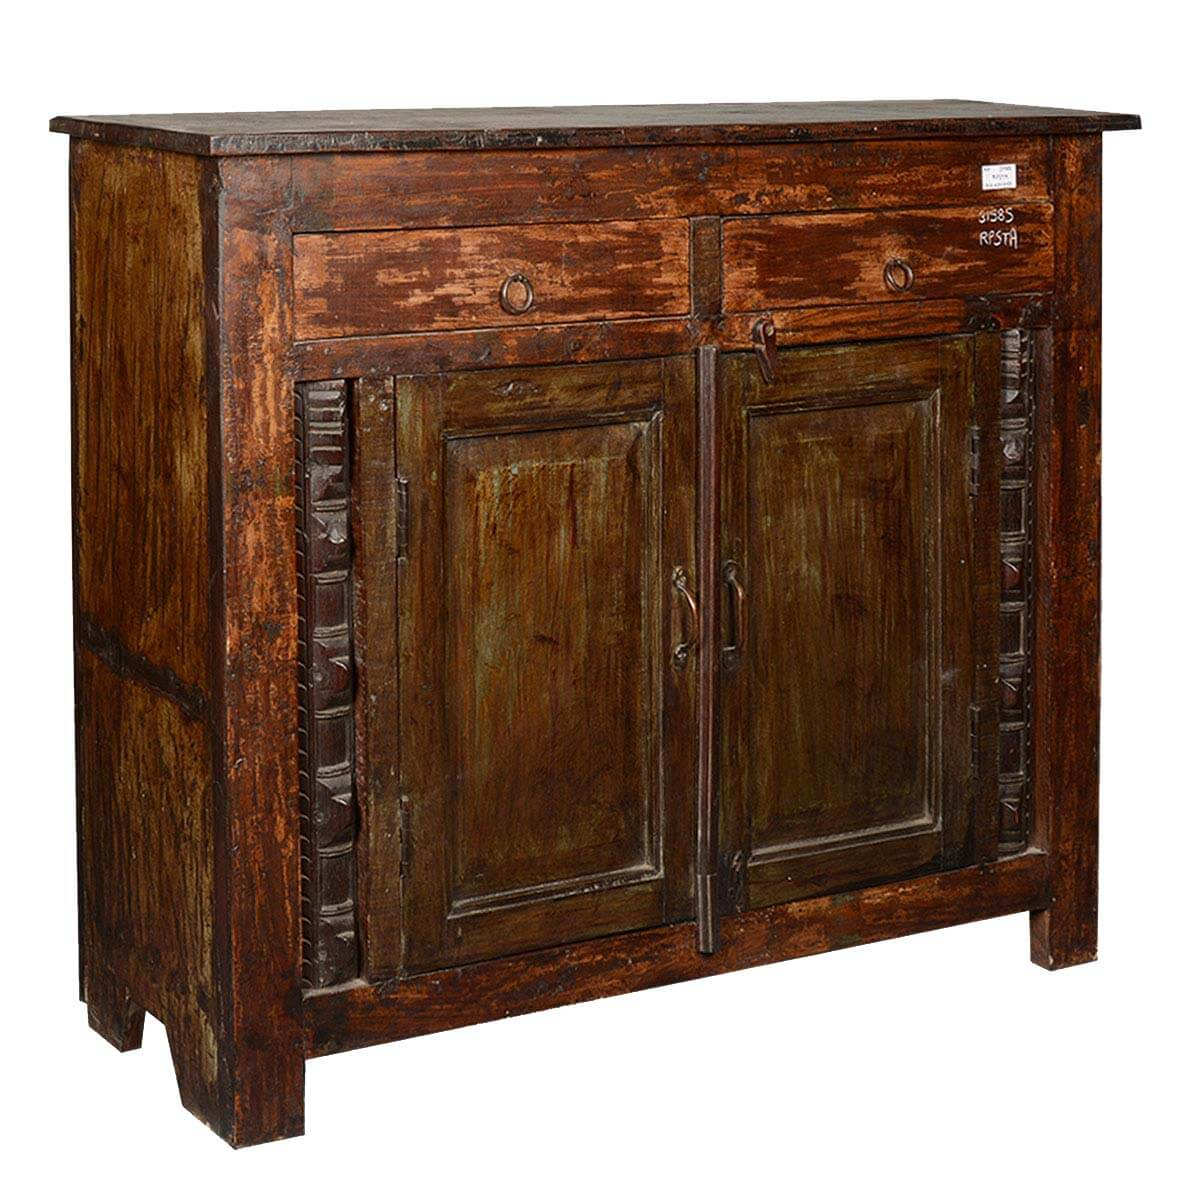 Wild West Rustic Reclaimed Wood Furniture Storage Console